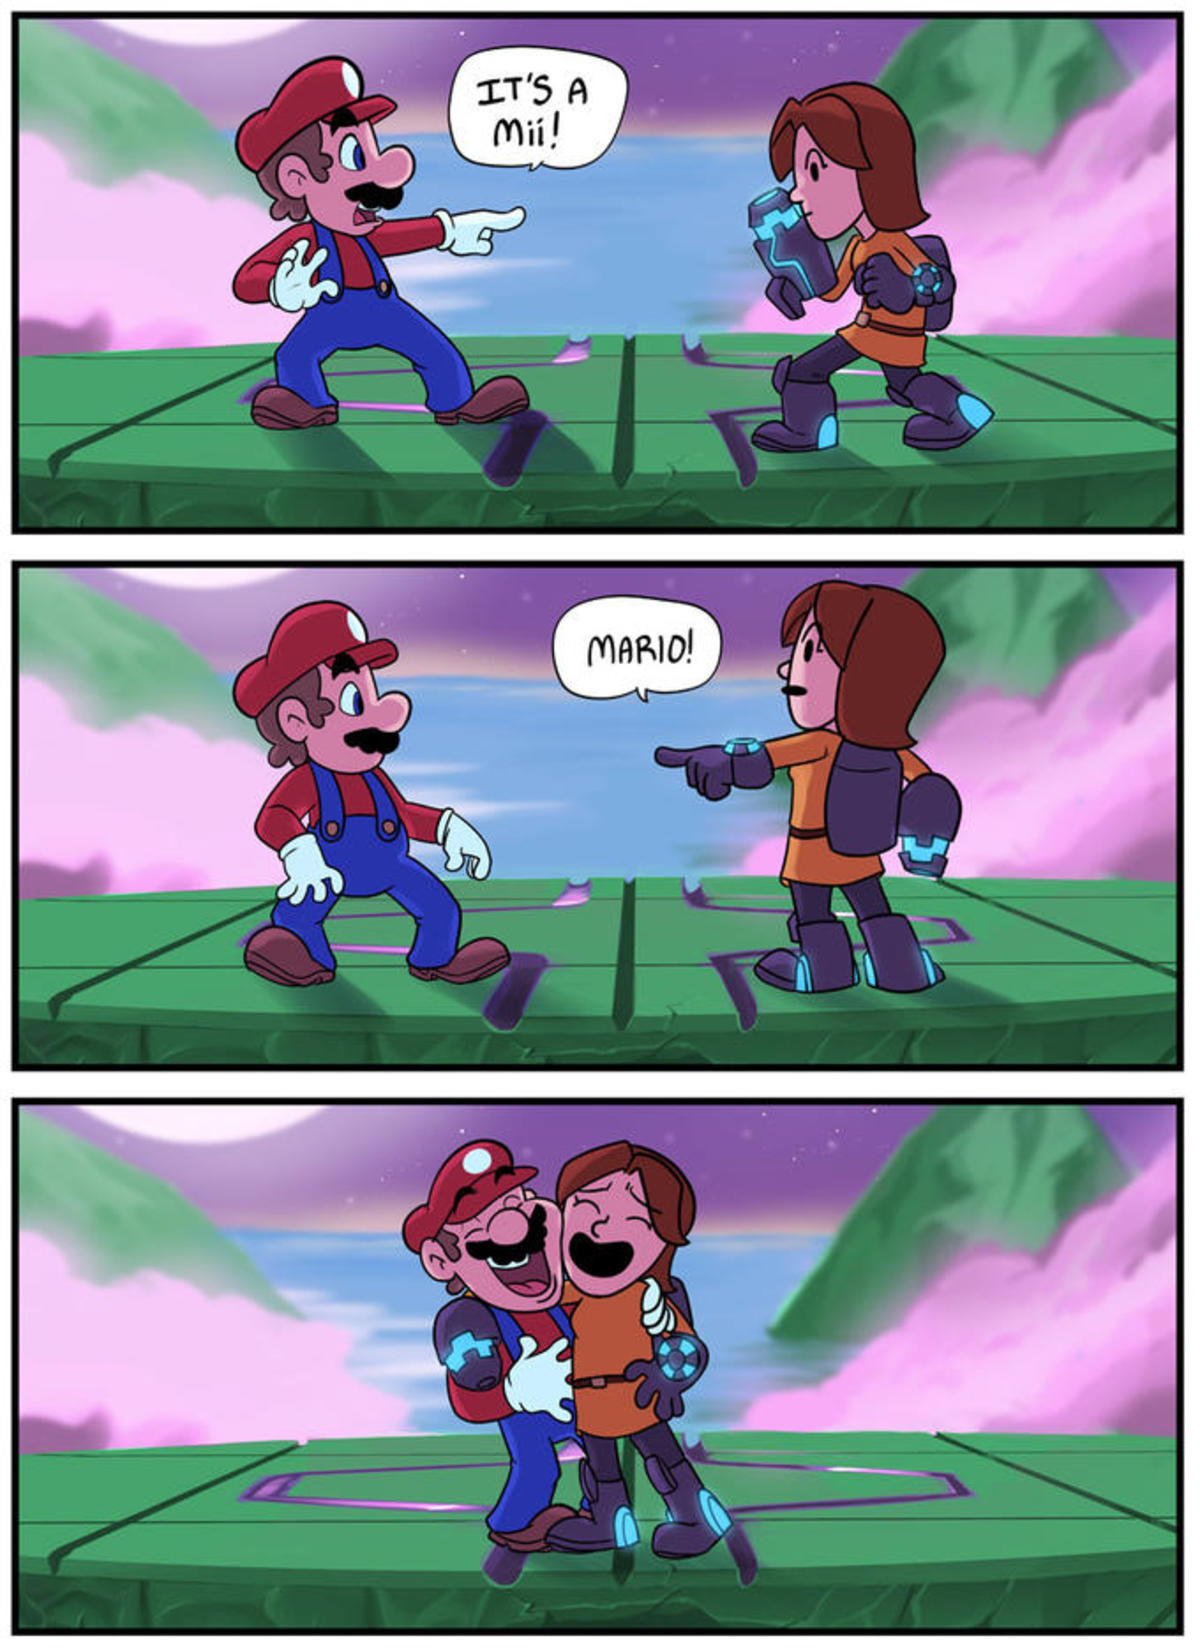 It's A Mii Mario. .. The art style reminds of the Fanboys webcomic, please tell me it's back. I NEED MY FIX DAMMIT